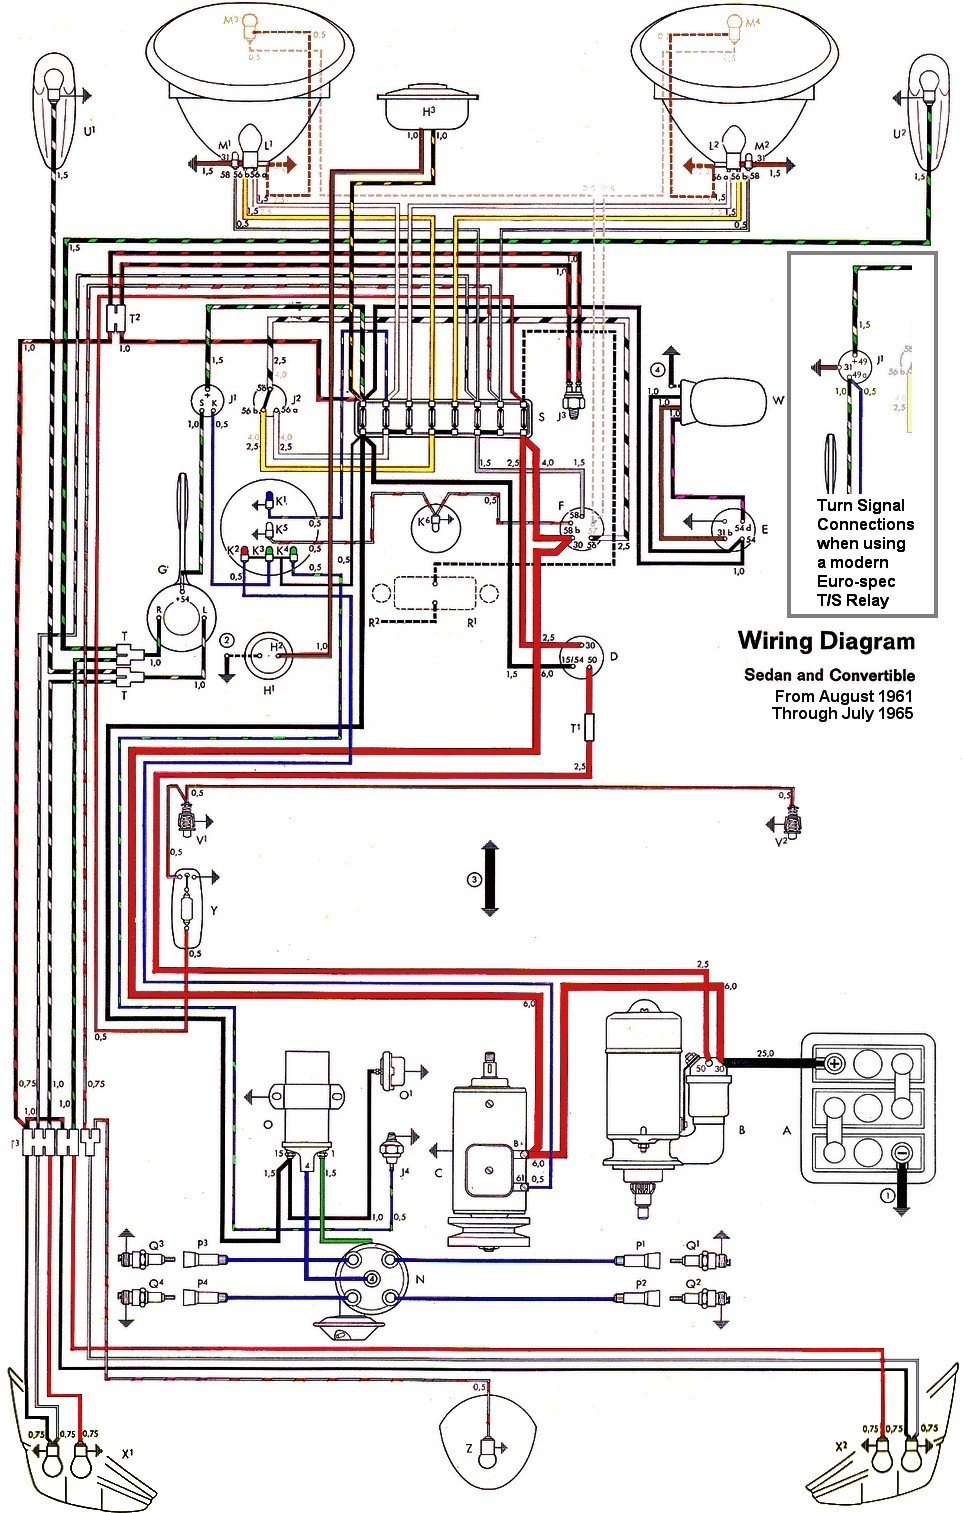 bug_62 65withinset wiring diagram vw beetle sedan and convertible 1961 1965 vw 1971 vw bus wiring diagram at bayanpartner.co